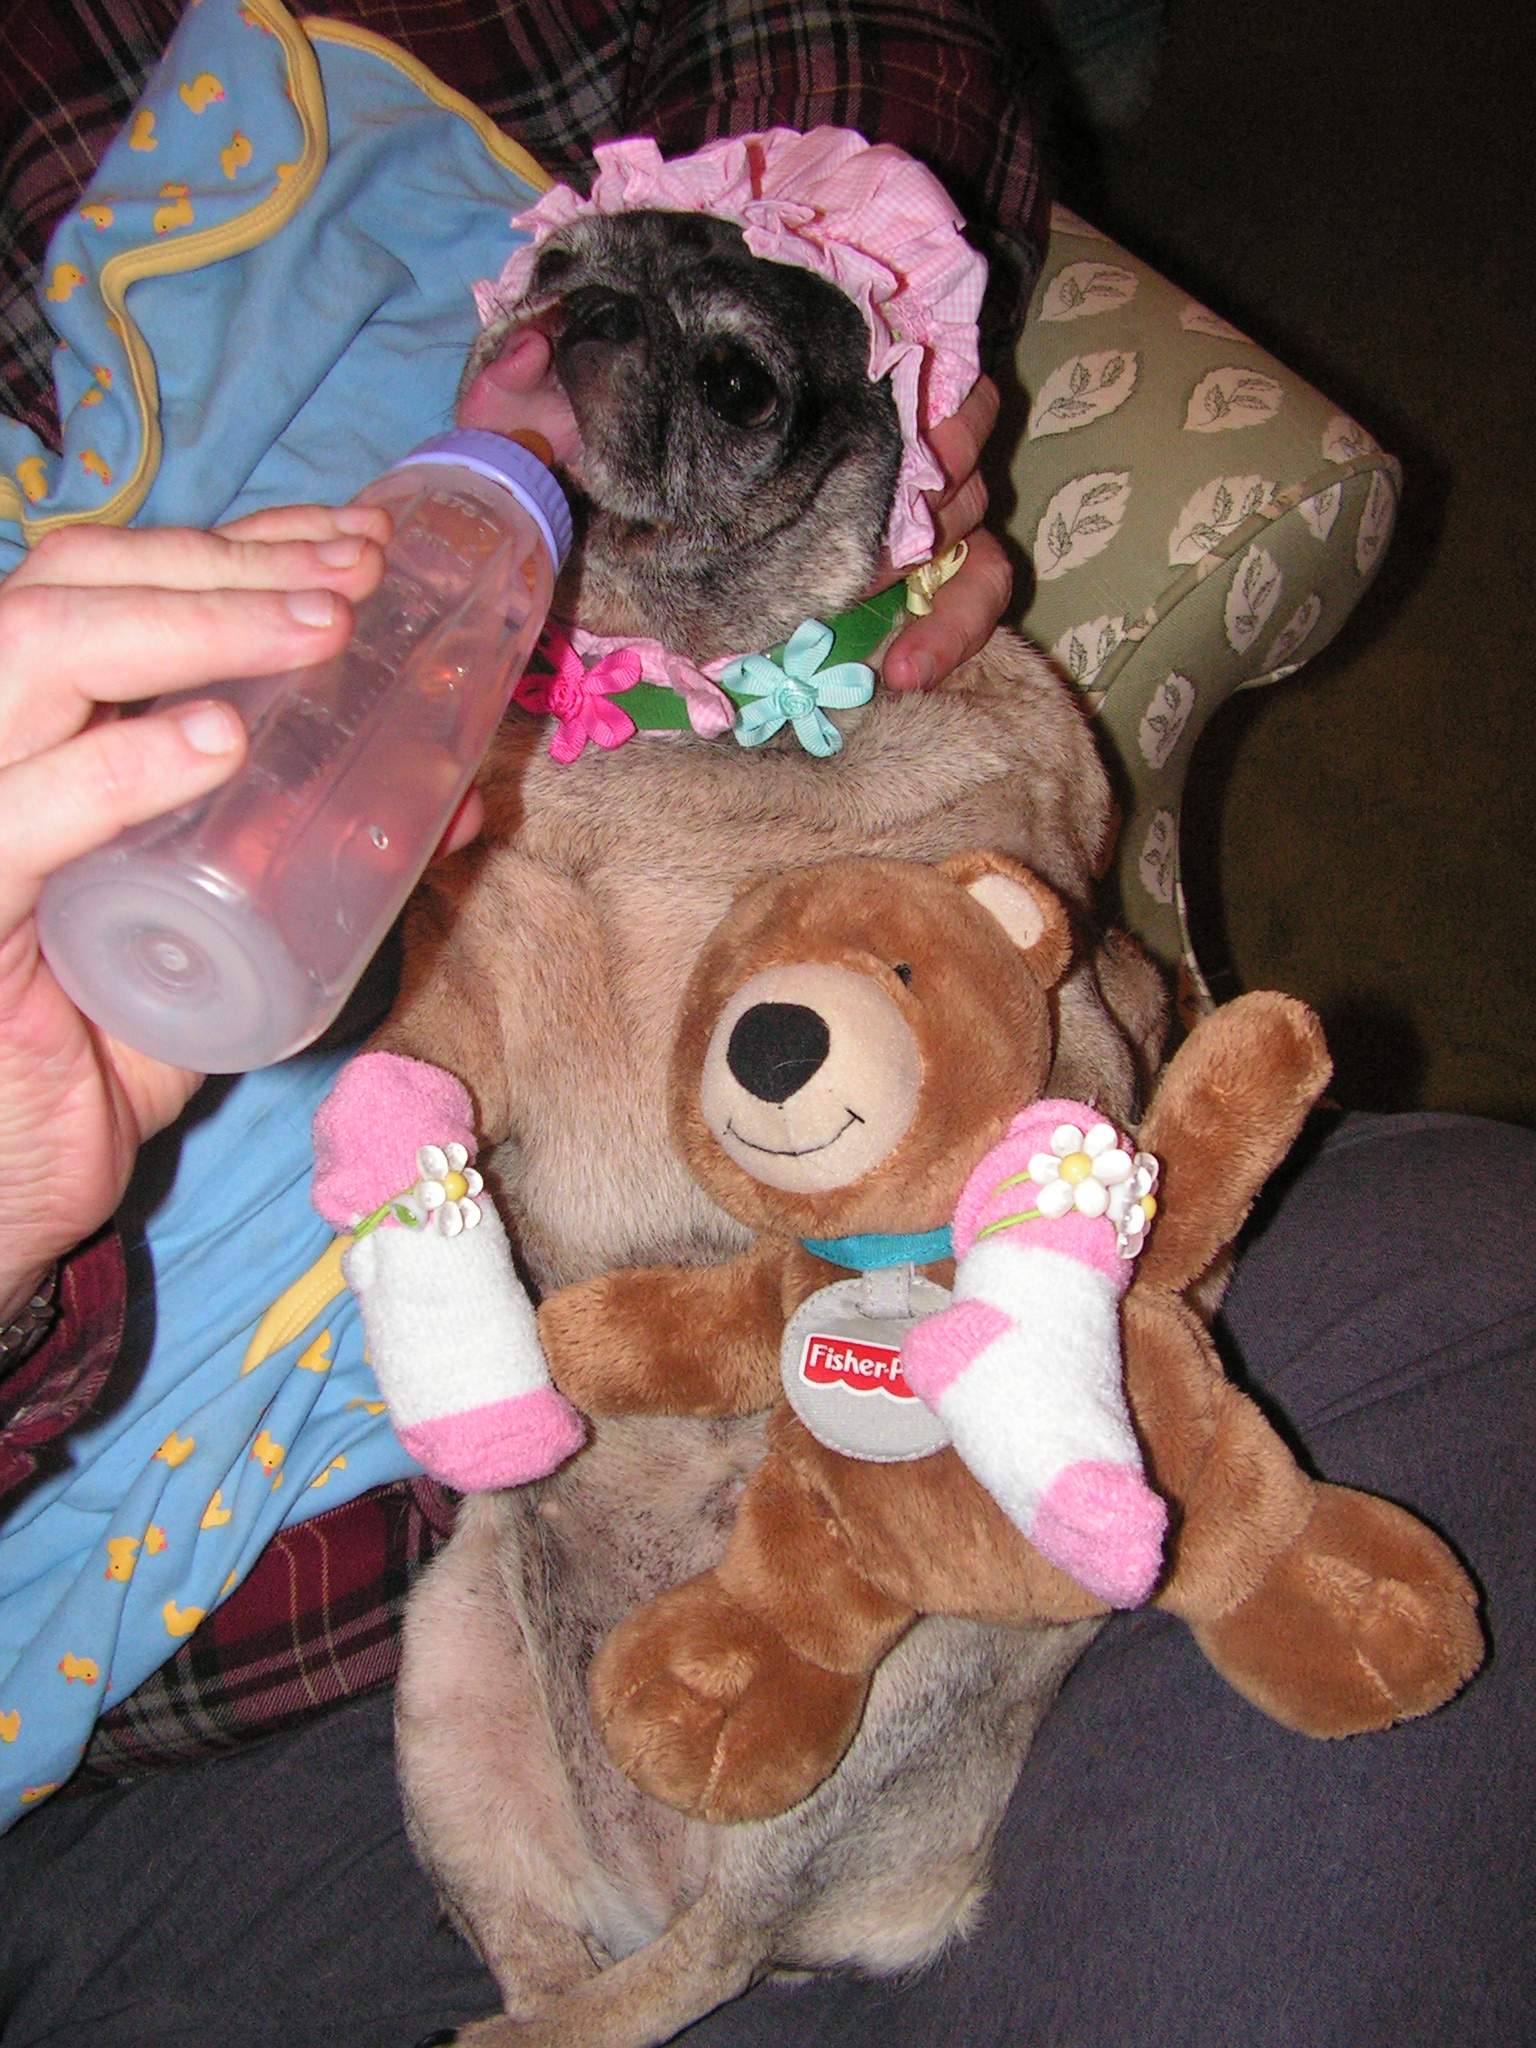 My Pug, Gypee dressed up as a baby.